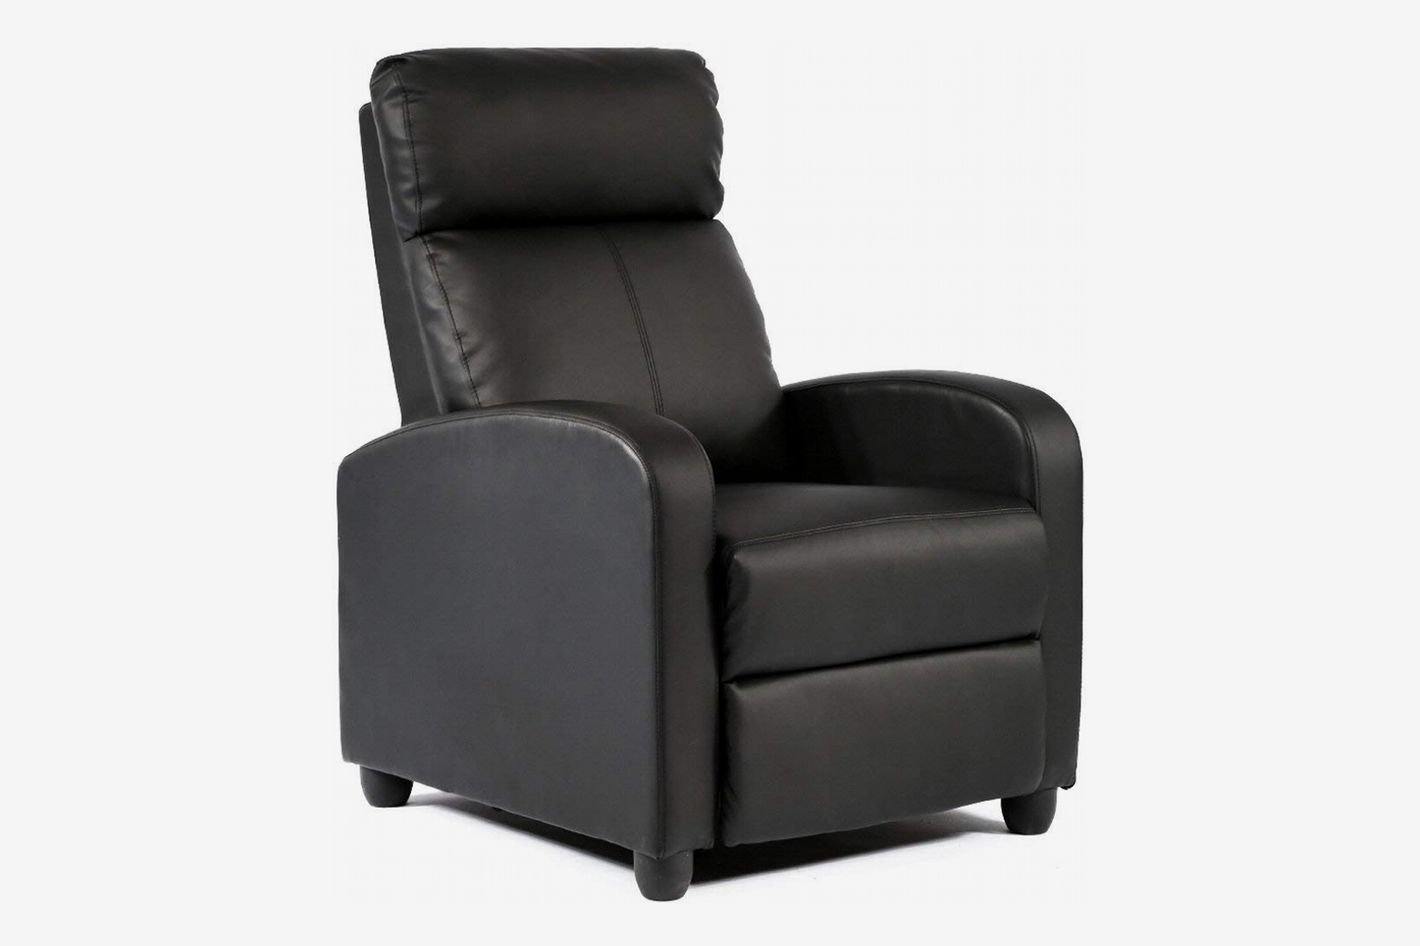 BestMassage Modern Leather Chaise Couch Single Recliner Chair